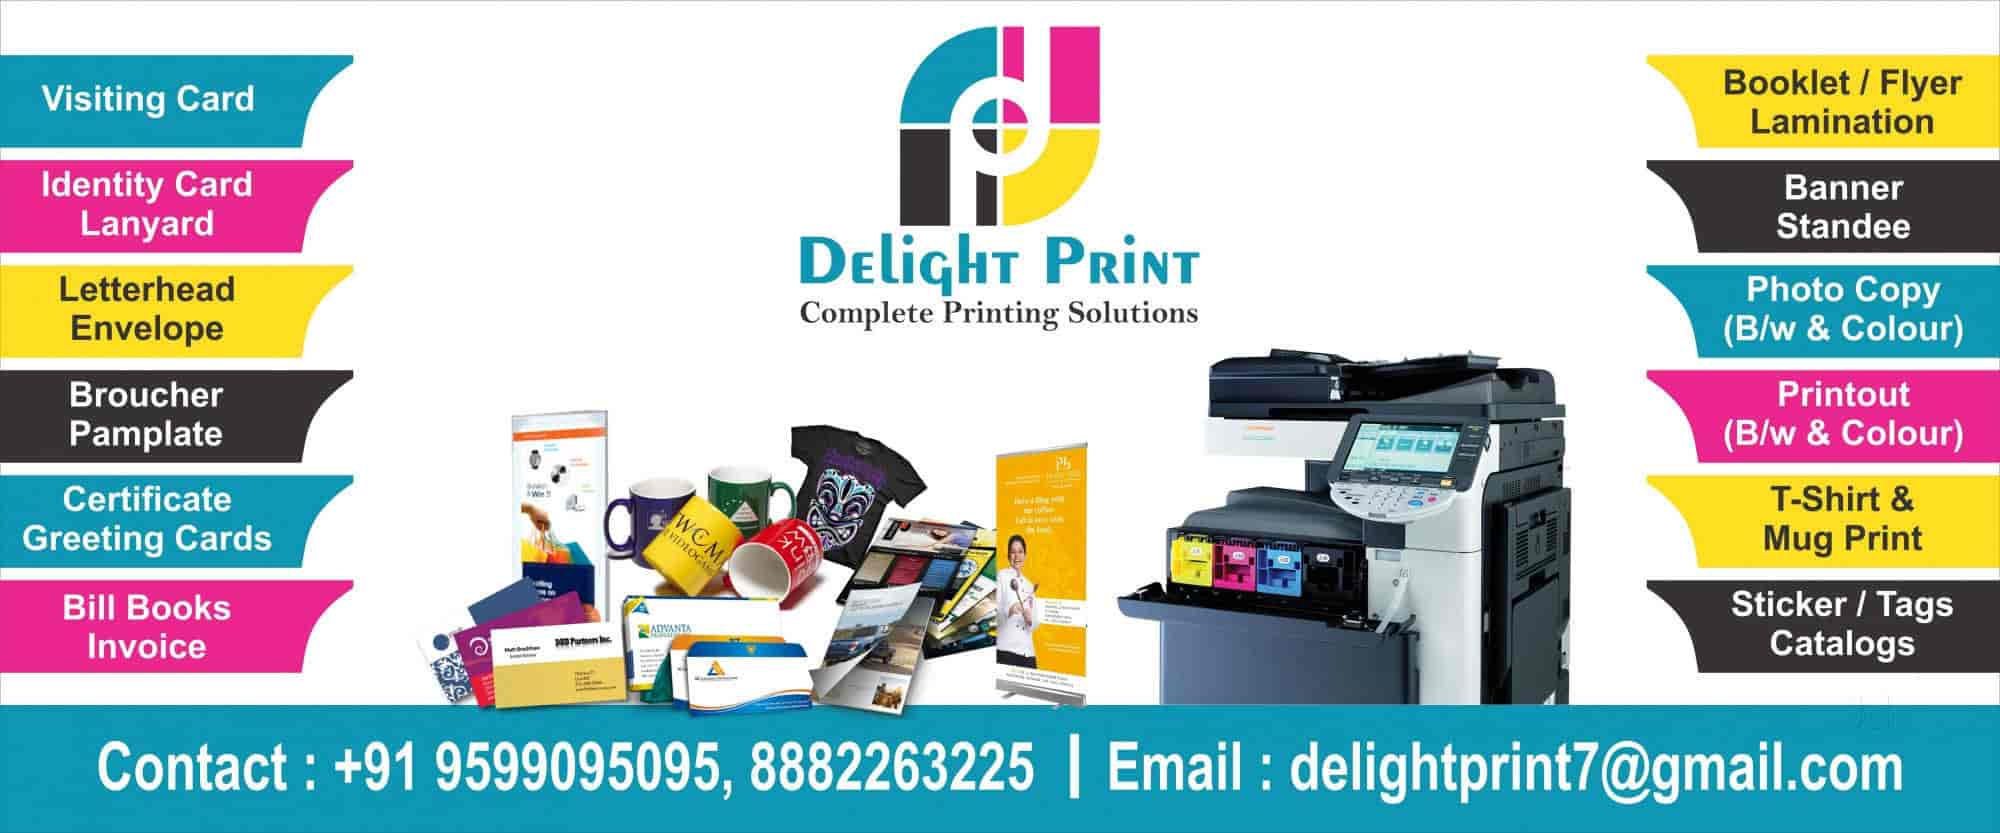 Delight Print Photos, Kaushambi, Ghaziabad- Pictures & Images ...